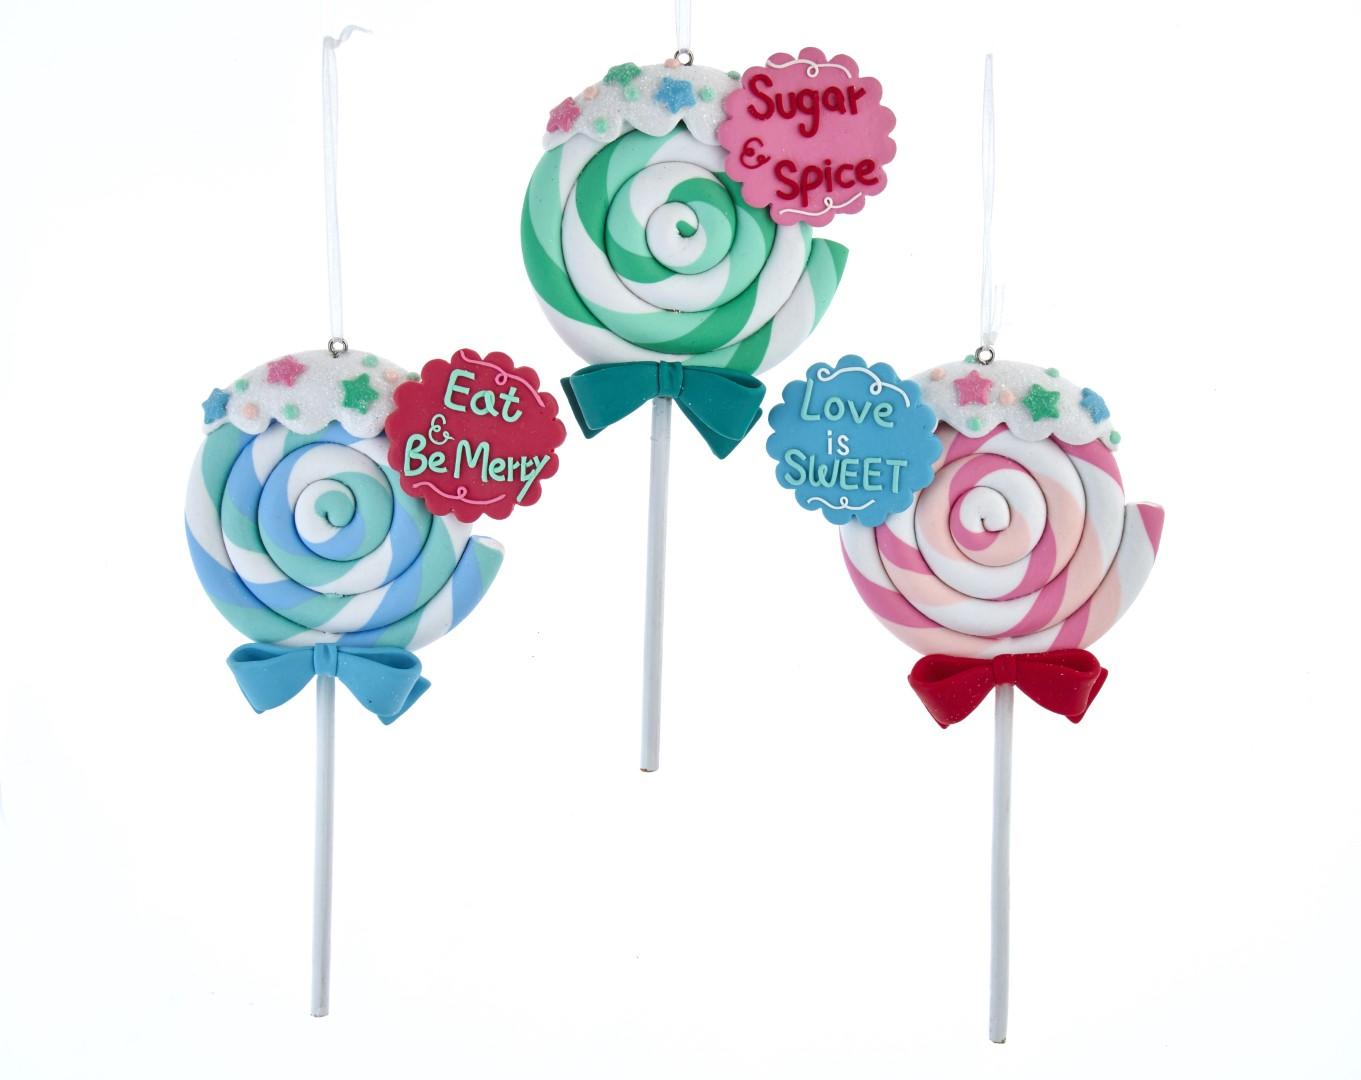 Claydough lollipop ornament assorted: 'sugar & spice,' 'eat & be merry' & 'love is sweet.'